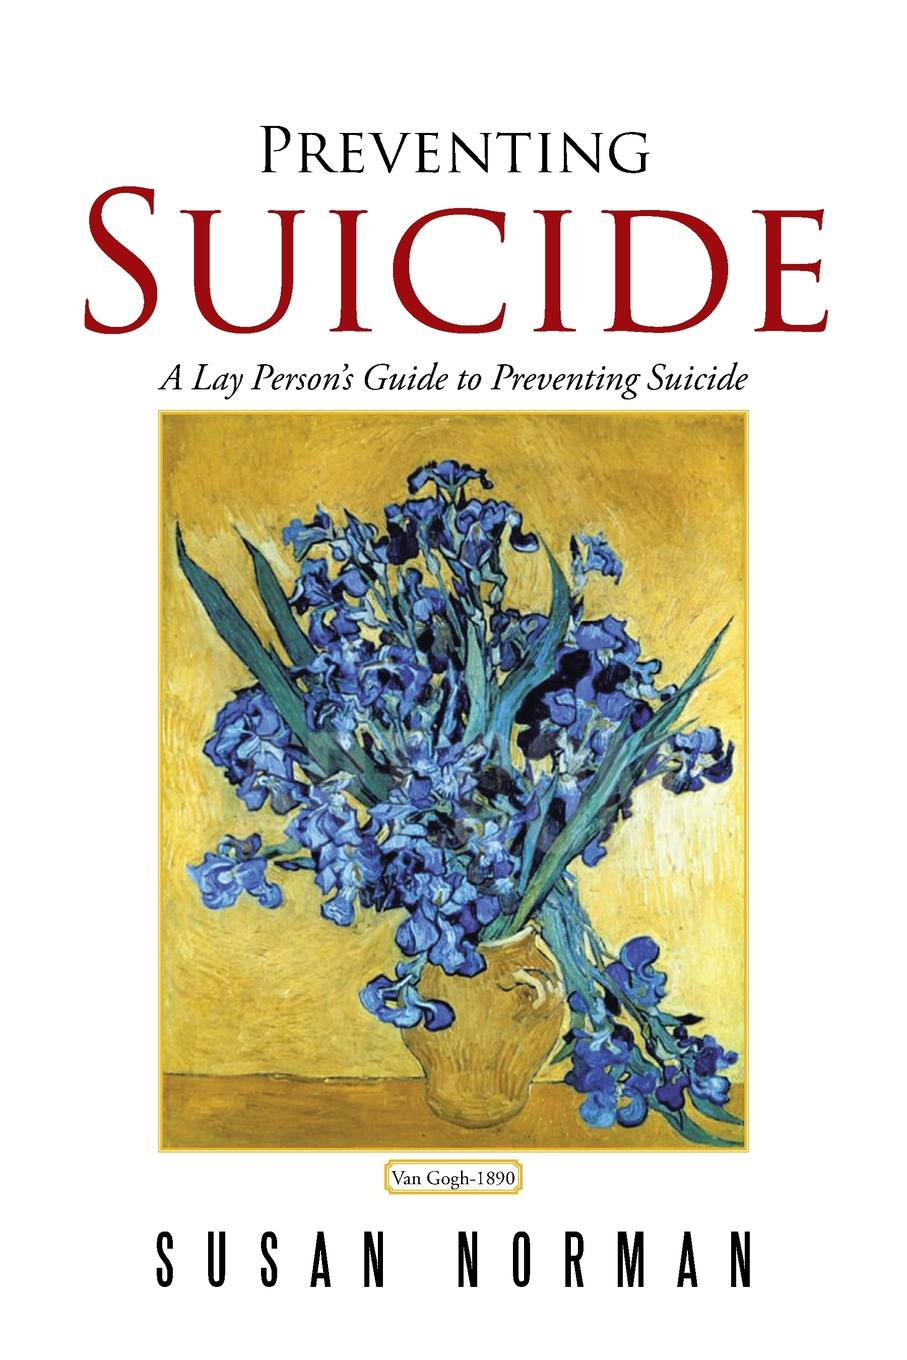 Susan Norman Preventing Suicide. A Lay Person's Guide to Preventing Suicide alistair gentry career suicide